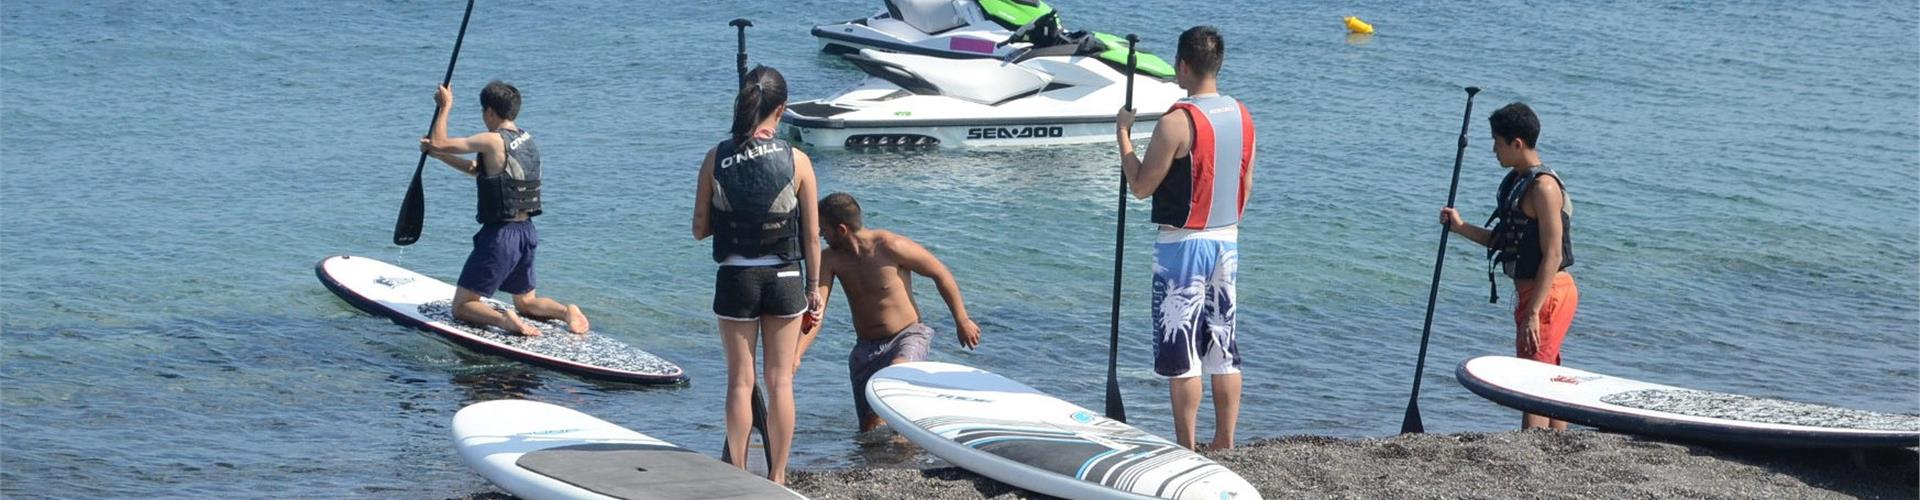 Photo of Stand-up Paddle Rental on Perivolos Beach in Santorini